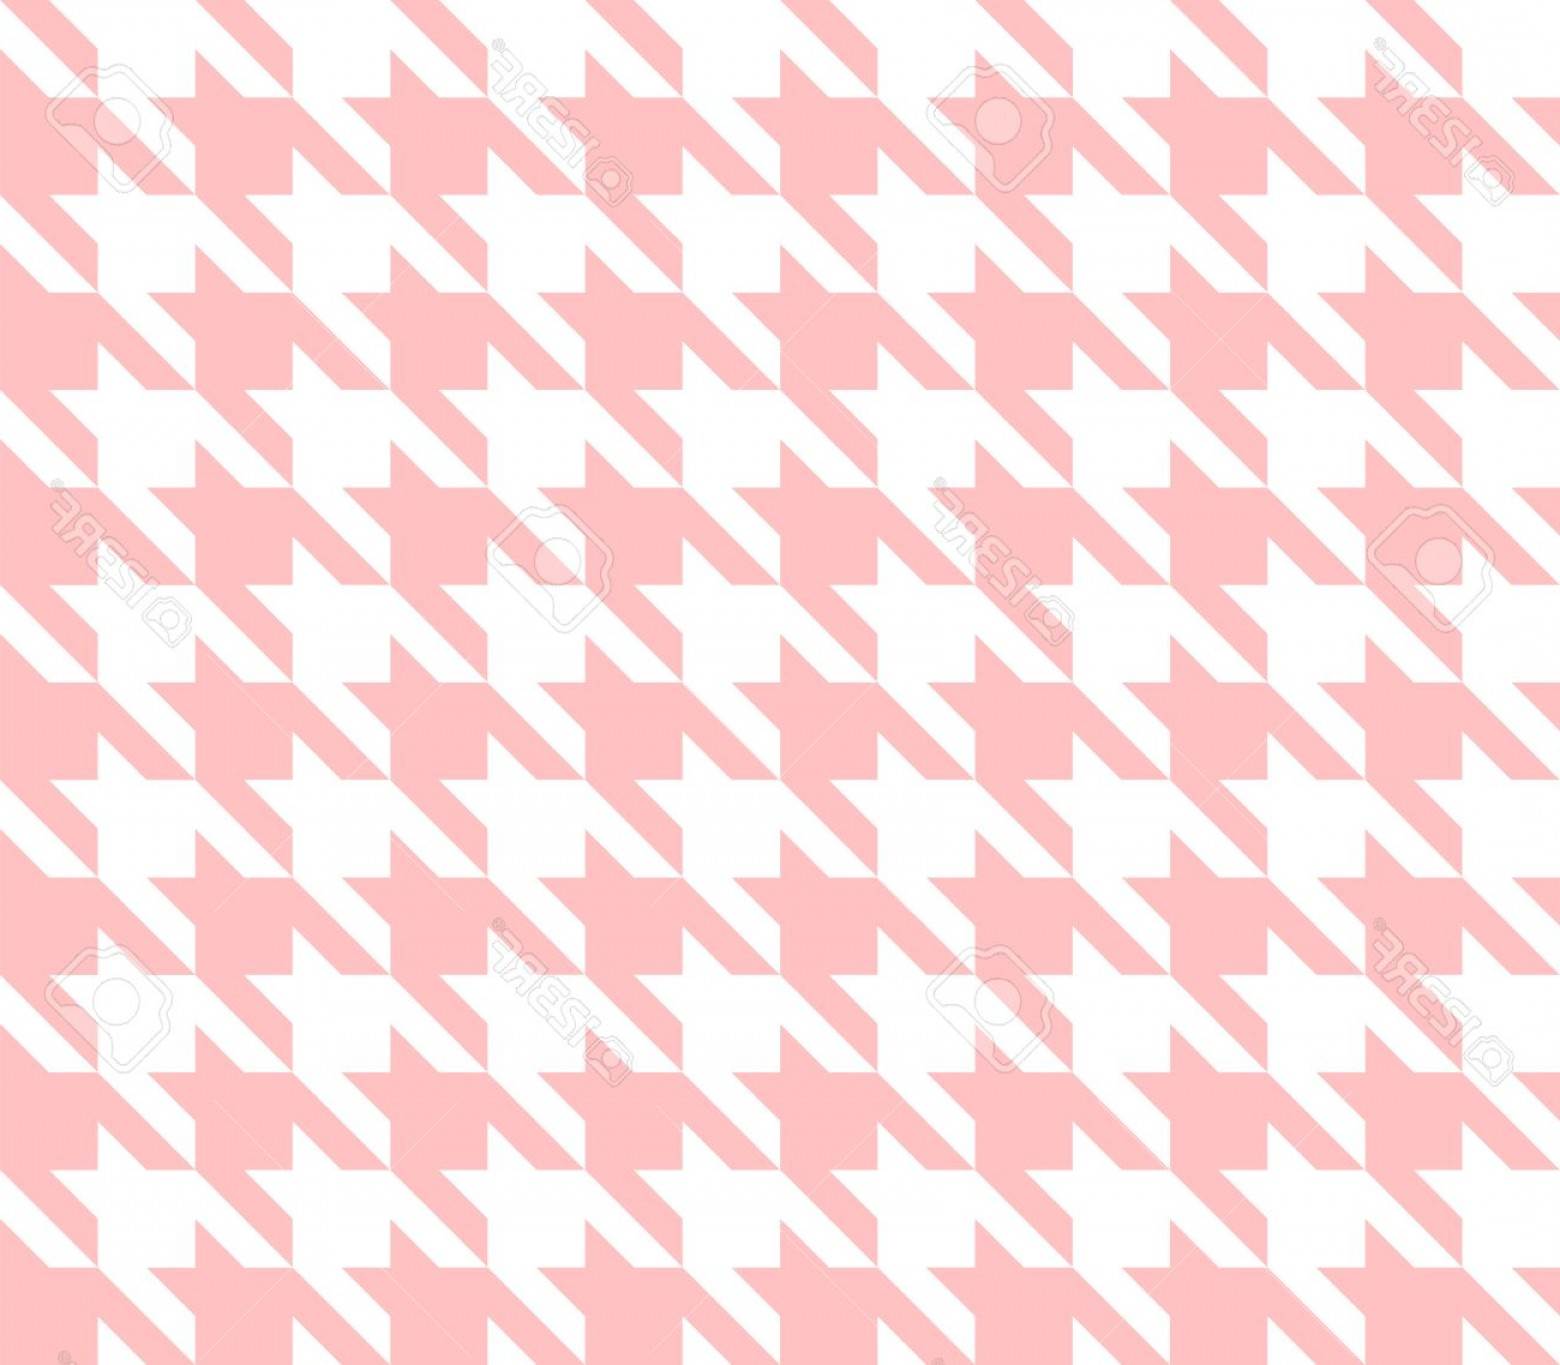 Pink And Black Houndstooth Vector: Photostock Vector Seamless Houndstooth Pattern Background With Pink And White Vector